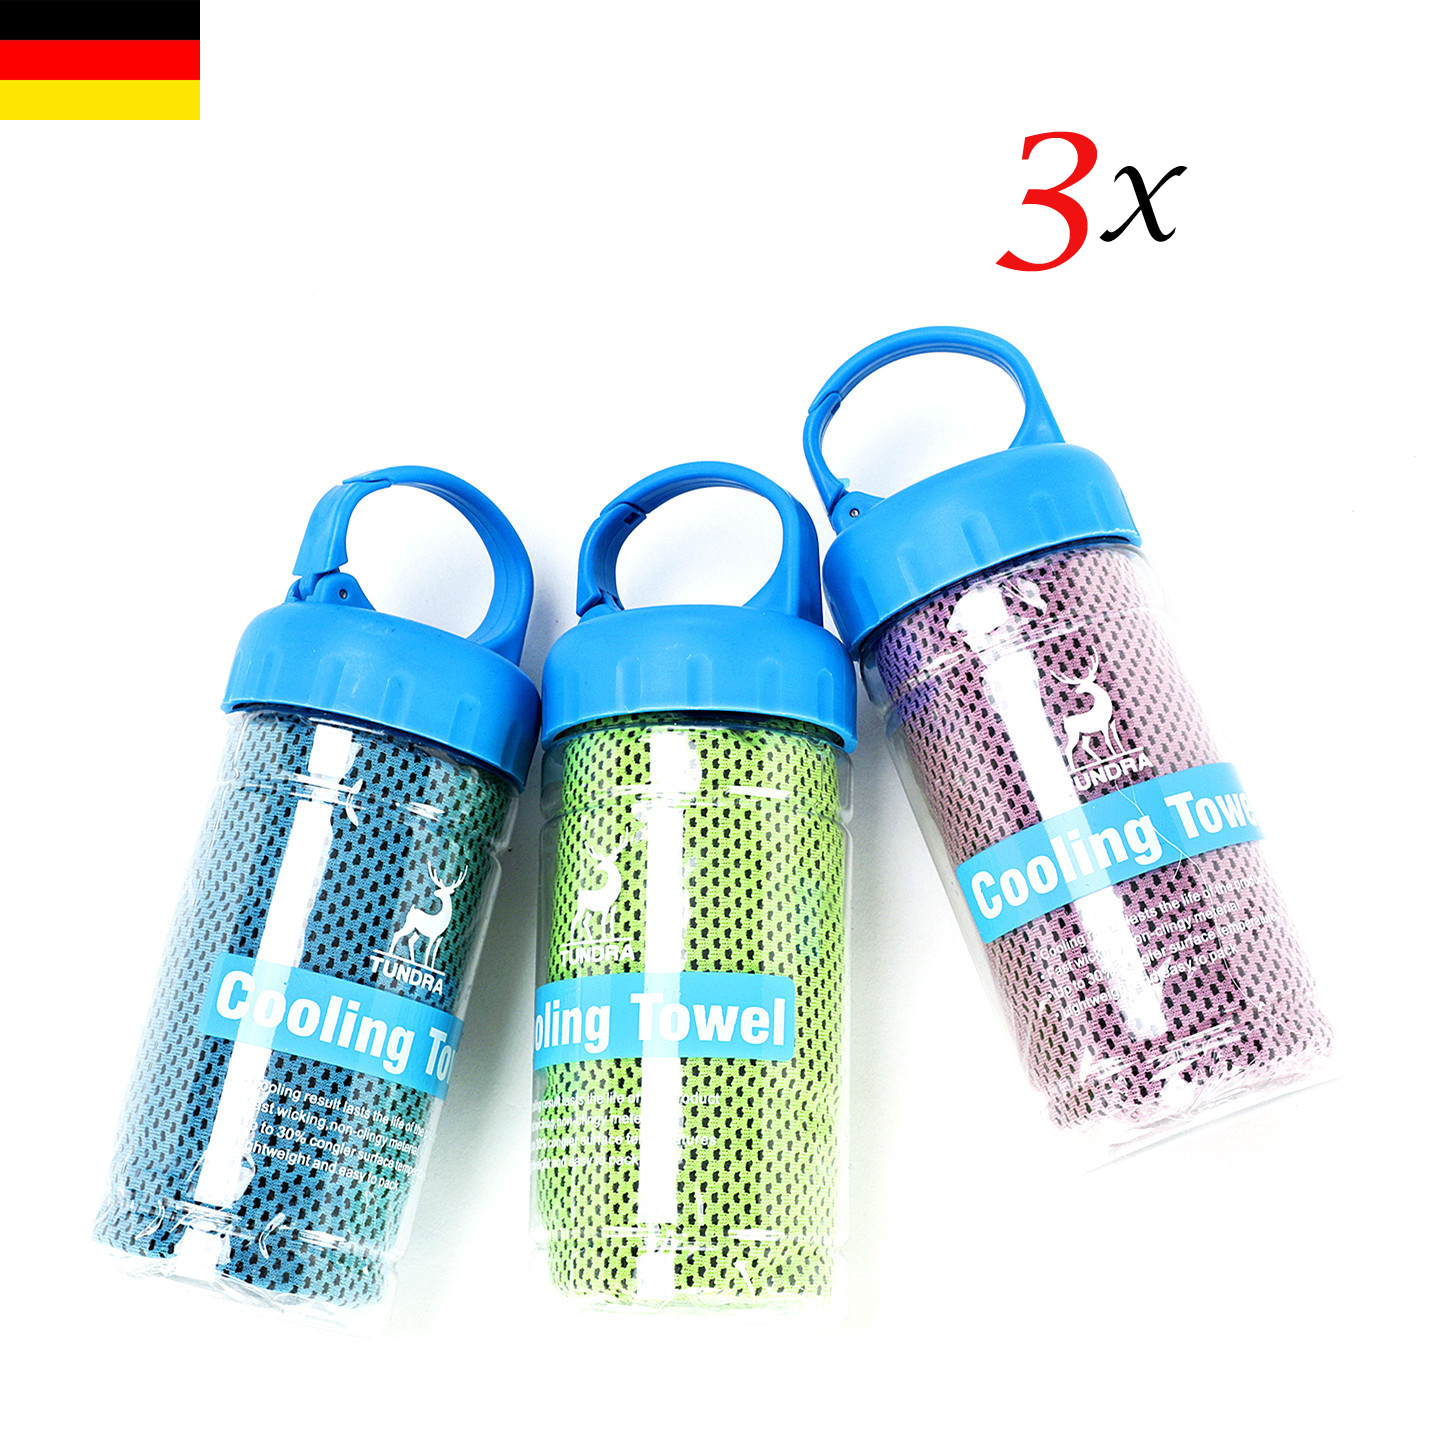 Towel Fitness Handtuch: 3X Sporthandtuch Fitness Cooling Towel Mit Flasche